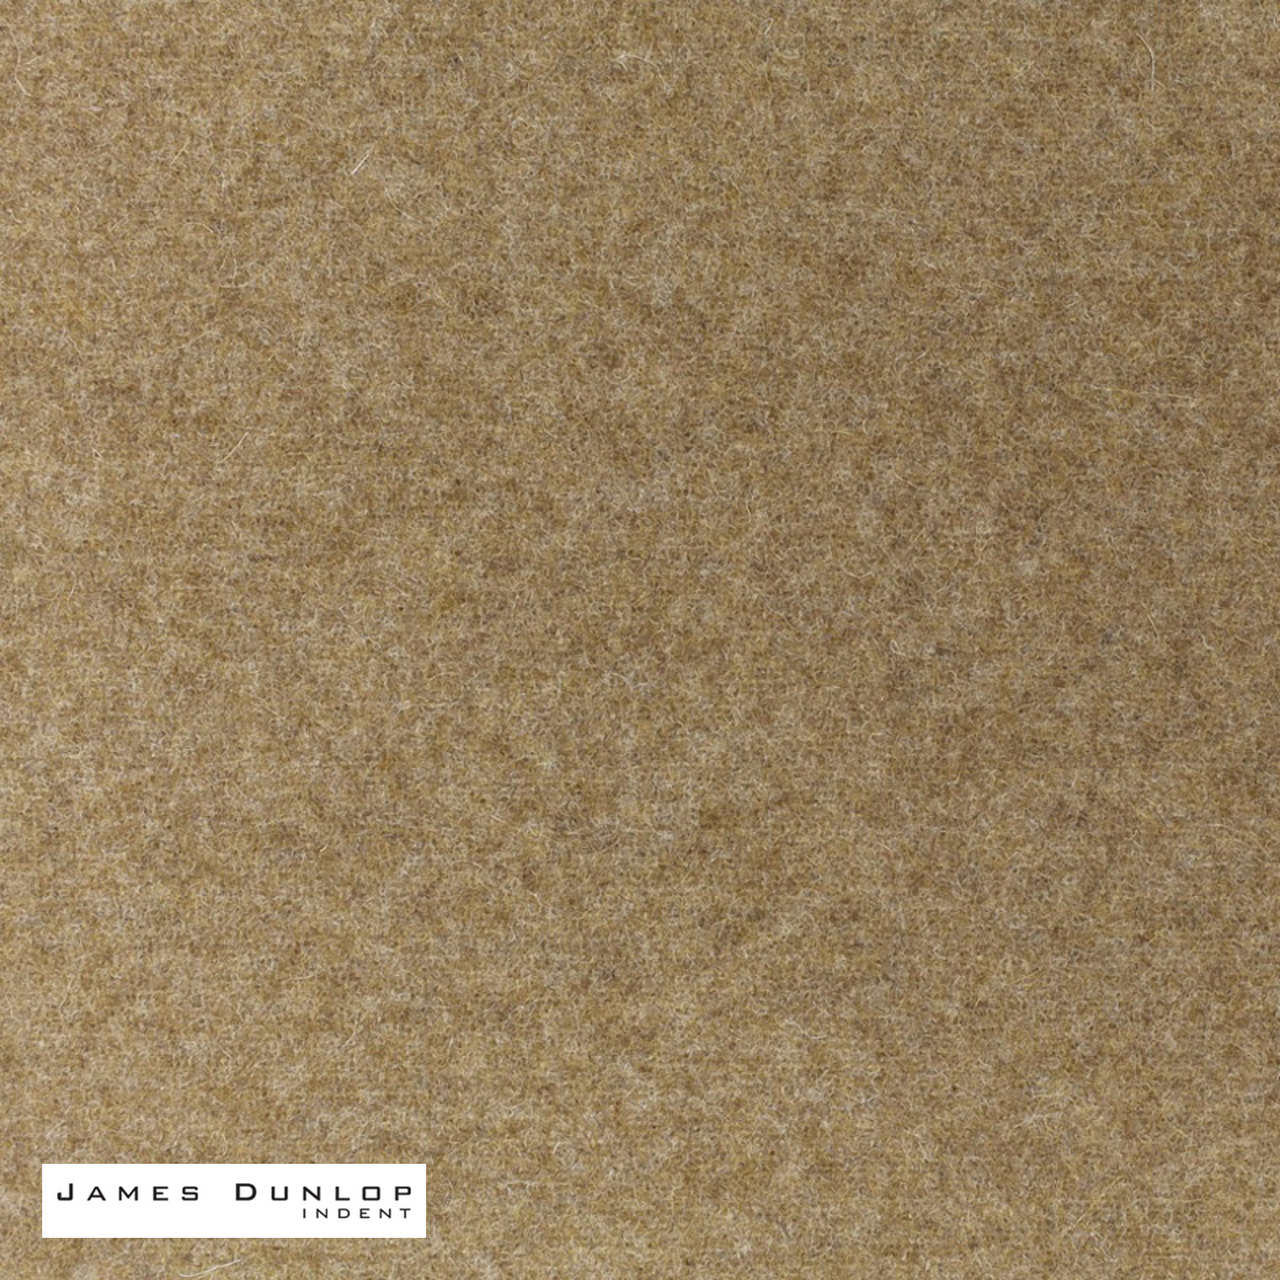 James Dunlop Indent - Nature - Biscuit  | Upholstery Fabric - Brown, Fire Retardant, Plain, Industrial, Synthetic, Transitional, Commercial Use, Dry Clean, Standard Width